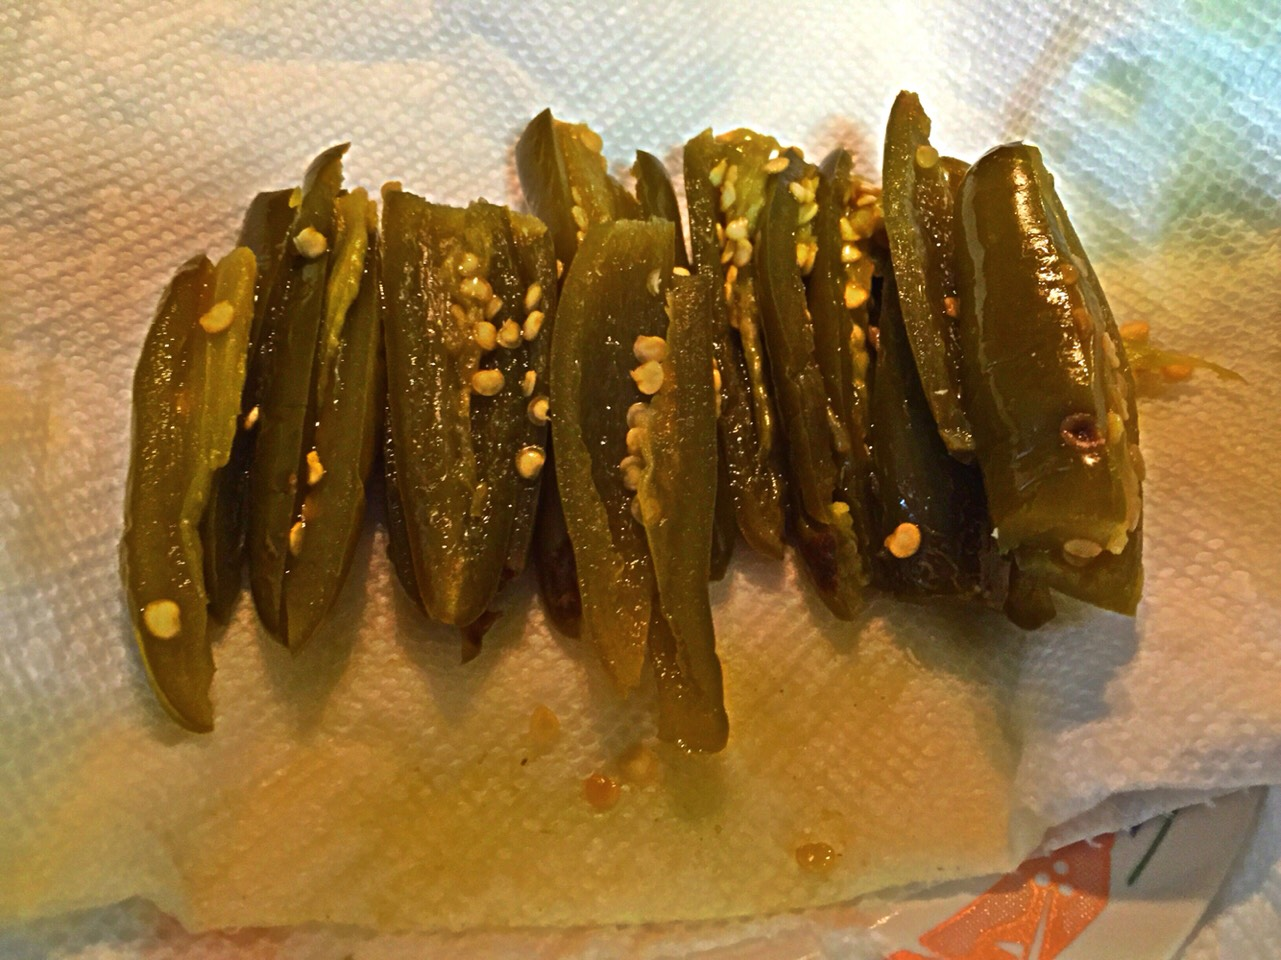 Place the jalapeños on a paper towel to soak up any excess vinegar.